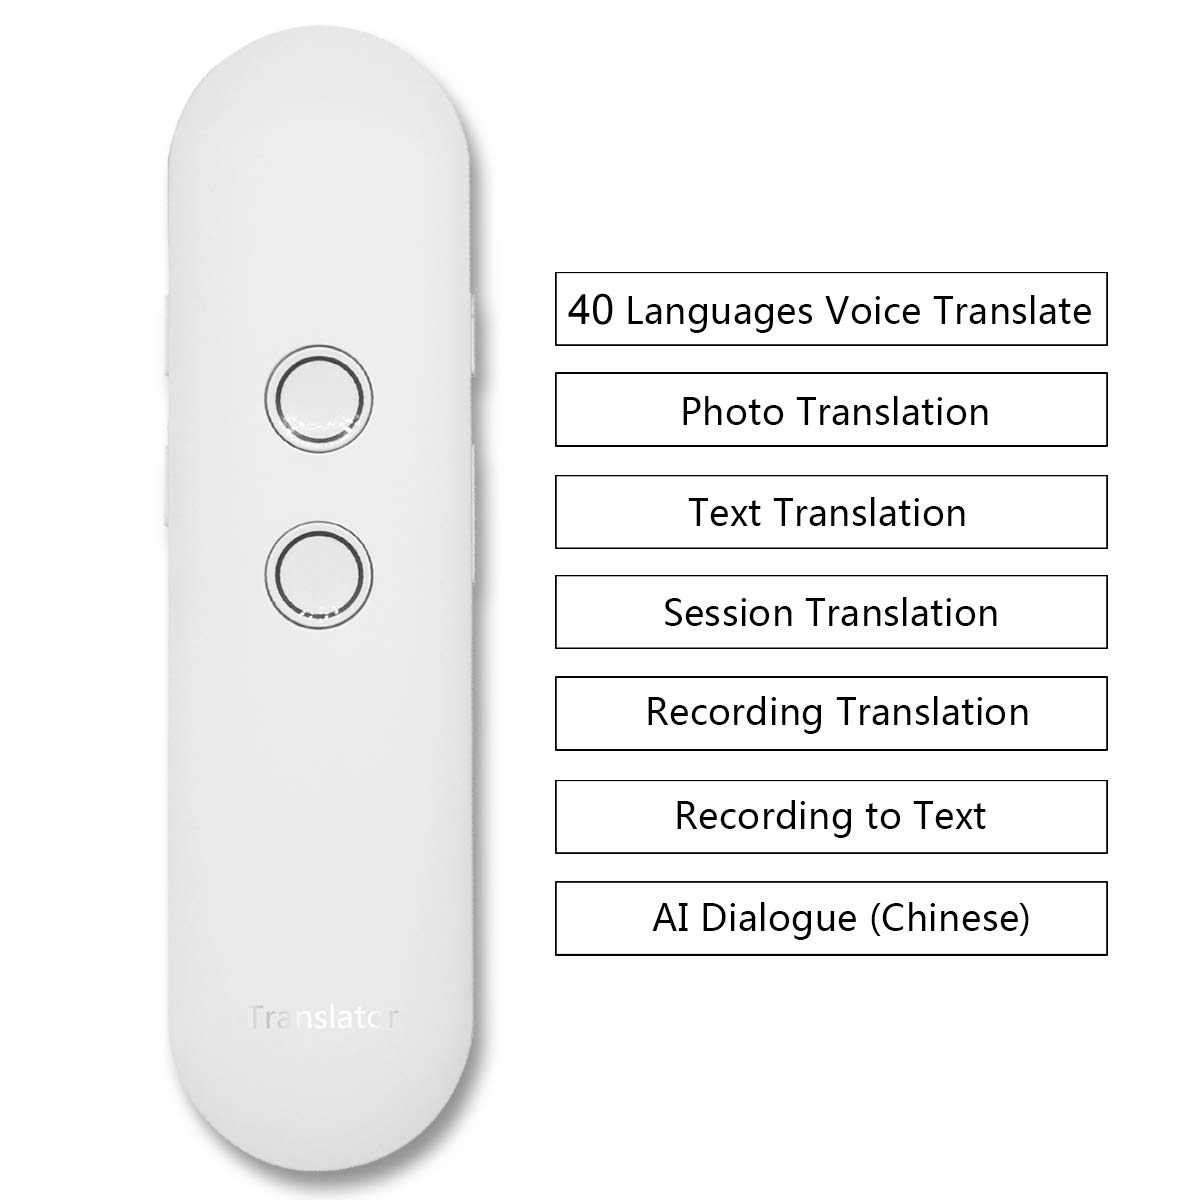 Language Translator Real Time Instant Two Way Speech Translate with Text Photo Recording Translation Support Chinese AI Dialogue Black OXSII 2019 New Updated 40